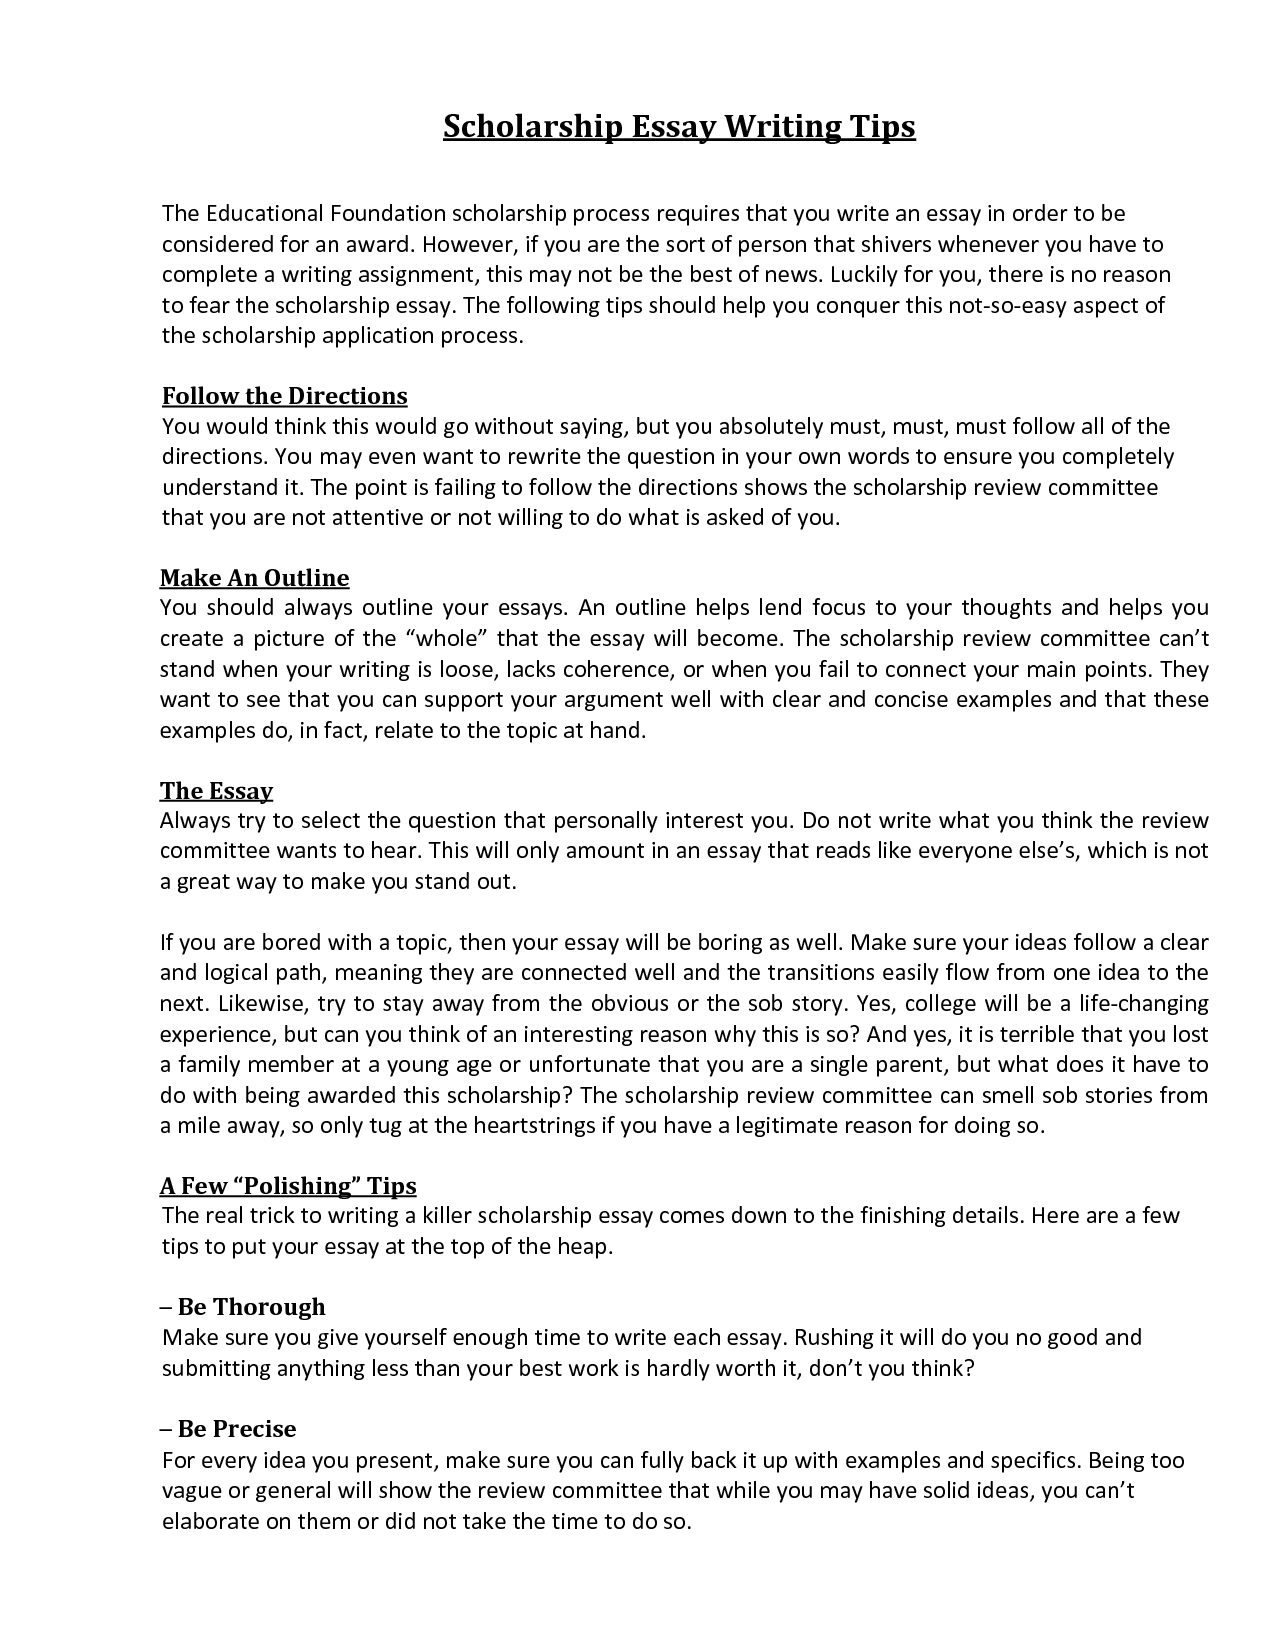 006 Essay Example Ziolxujgwq Scholarship Stunning Template Structure Format Examples Guidelines Full